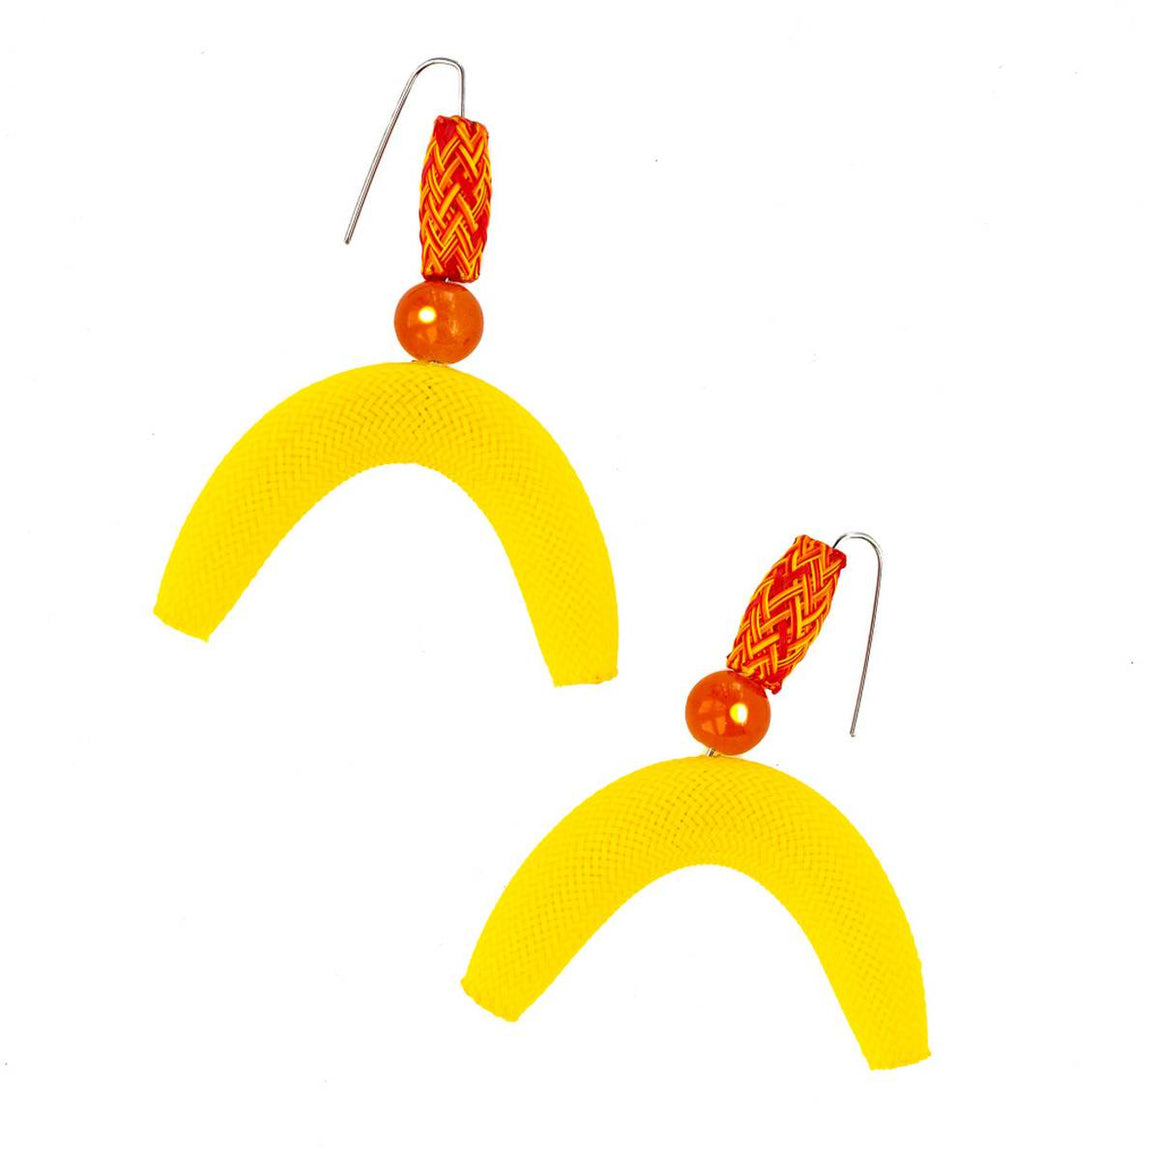 A pair of nylon mesh earrings featuring tube and semi-circle 'moon' shapes in yellow and red.